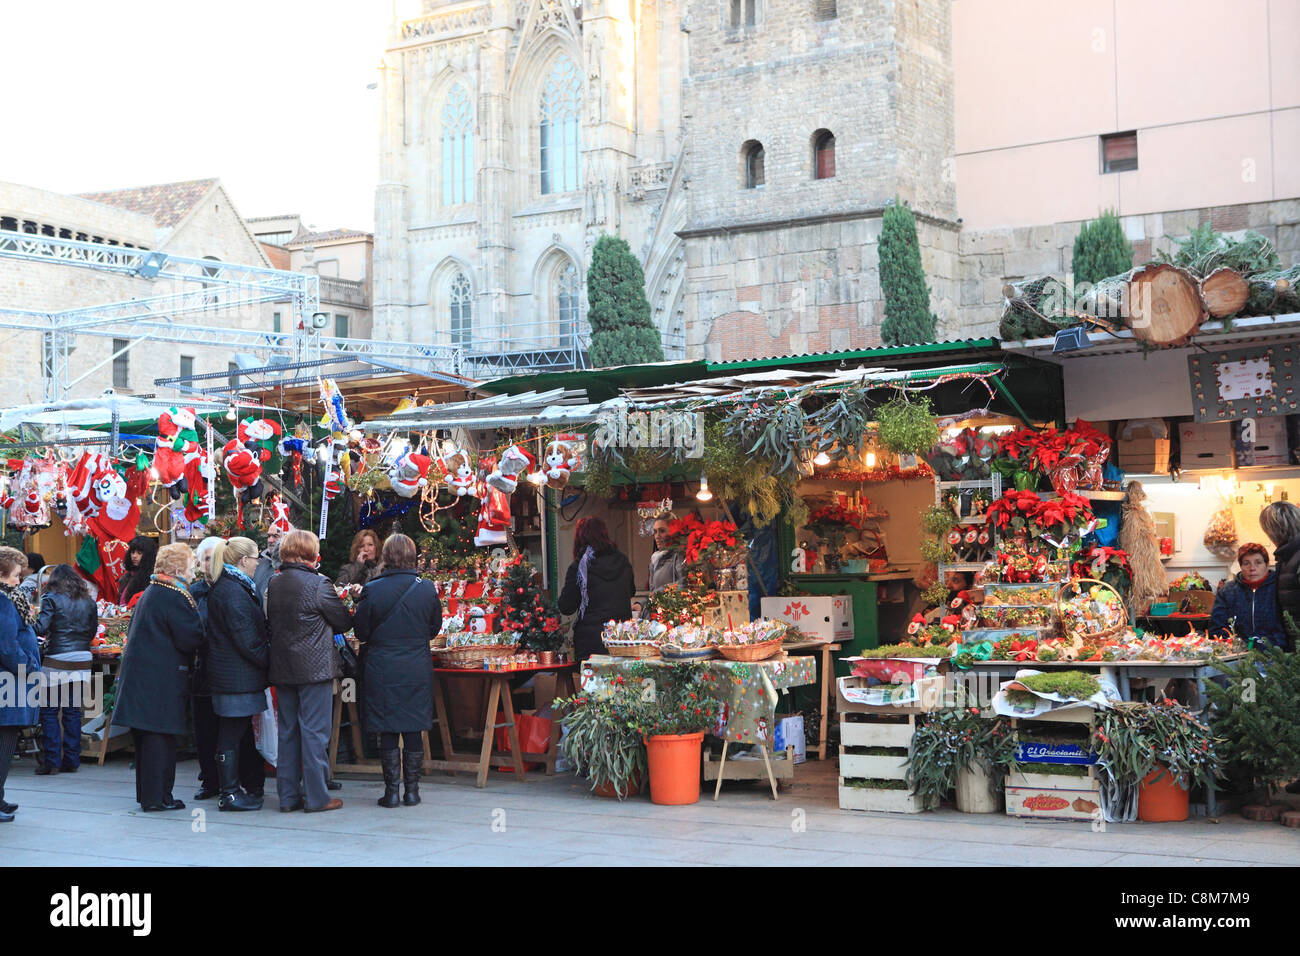 Christmas Market, Fira de Santa Llucia, by the Cathedral, on Placa de la Seu, in the Gothic Quarter, Barcelona, - Stock Image